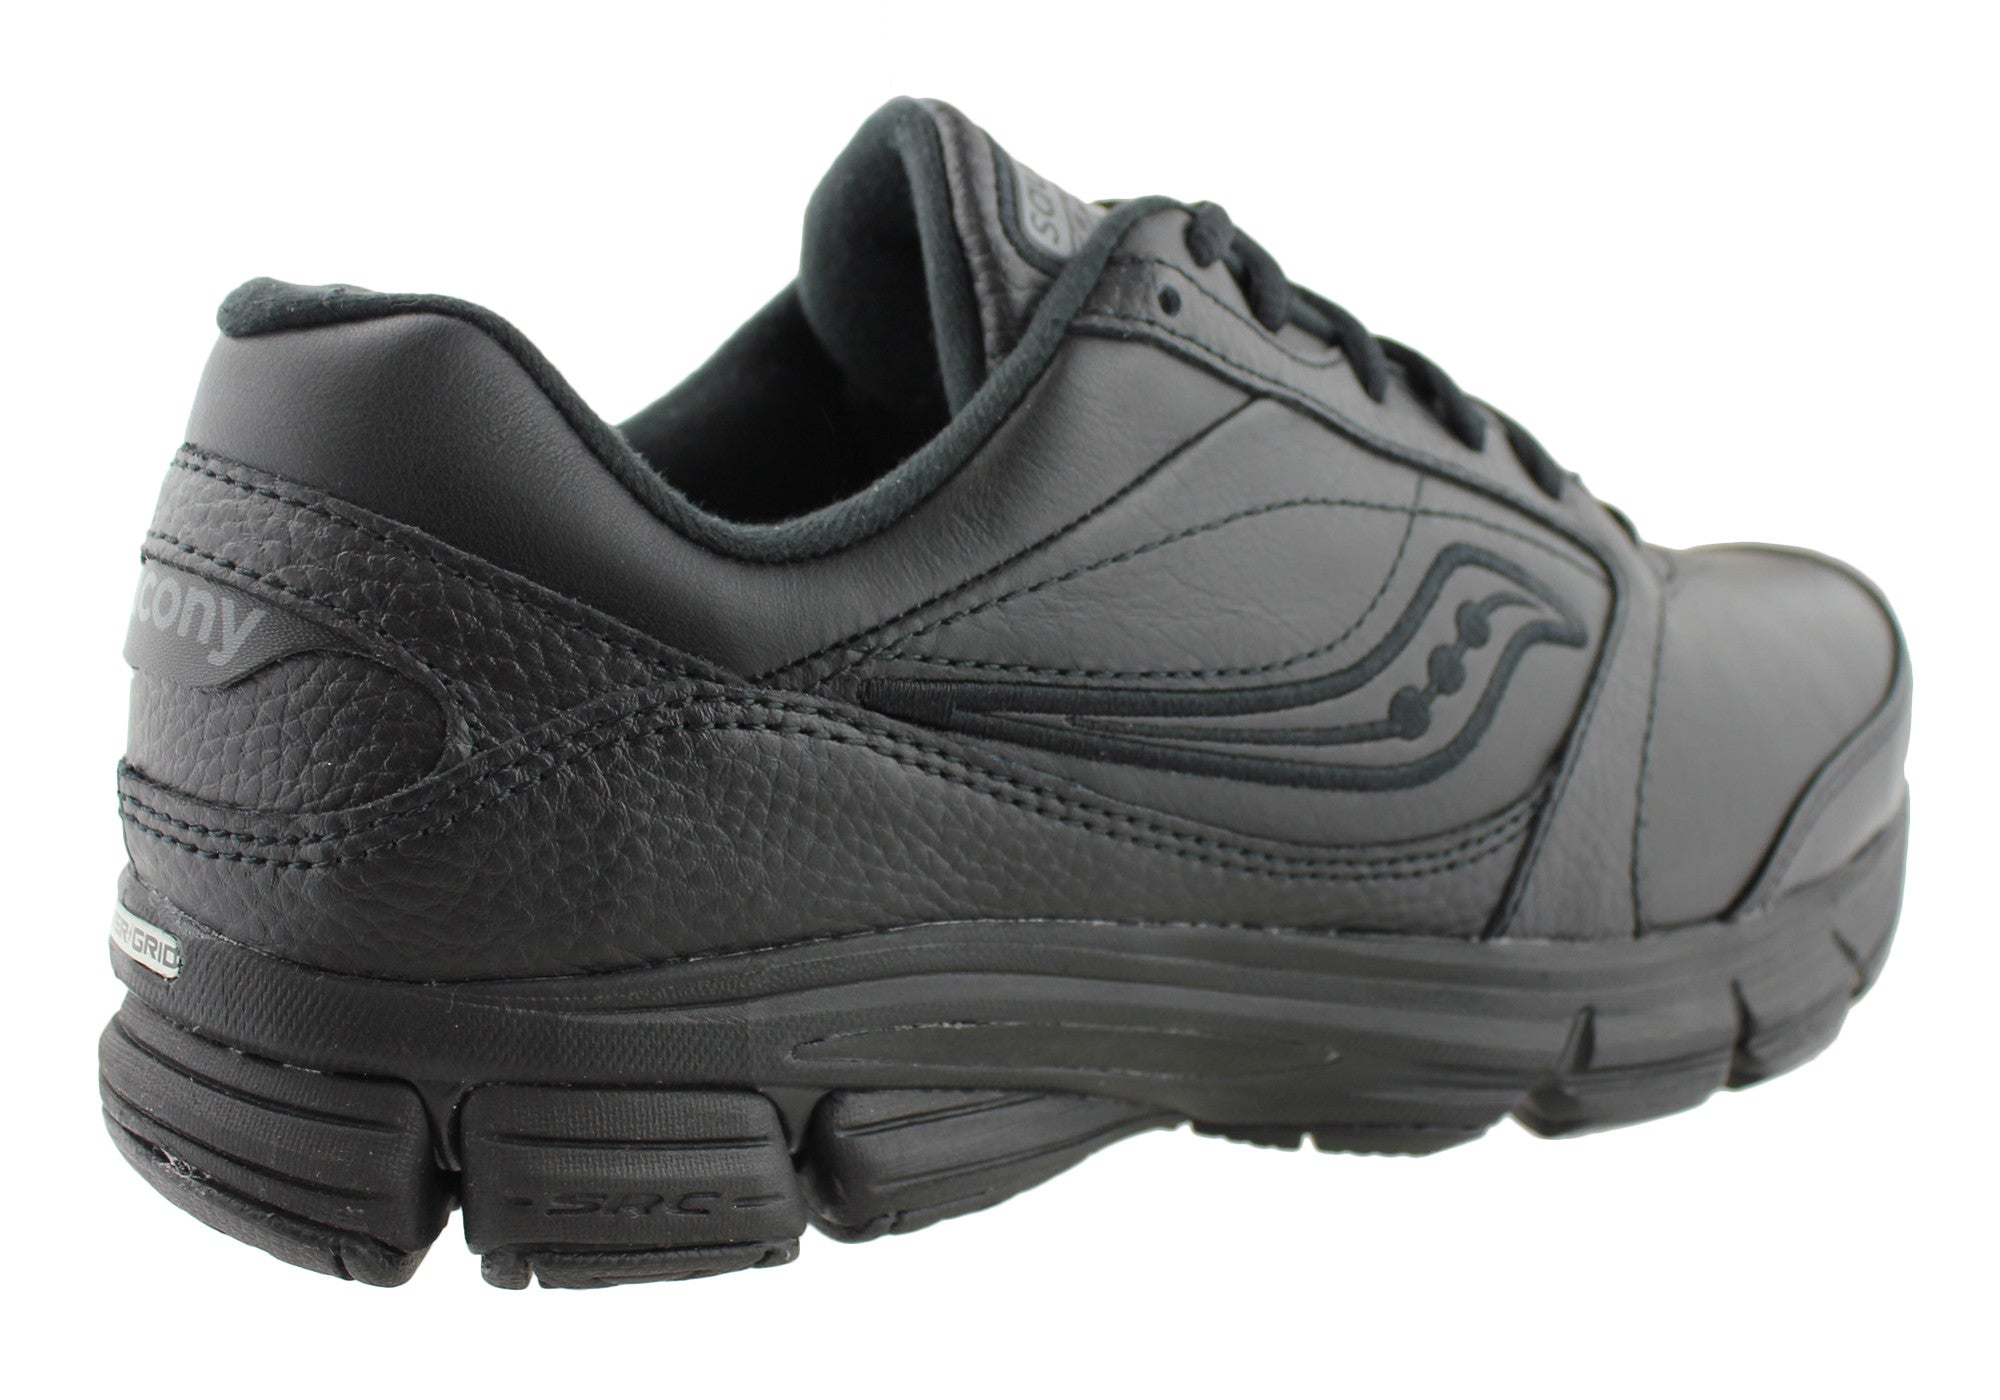 Womens Wide Fit Walking Shoes Uk